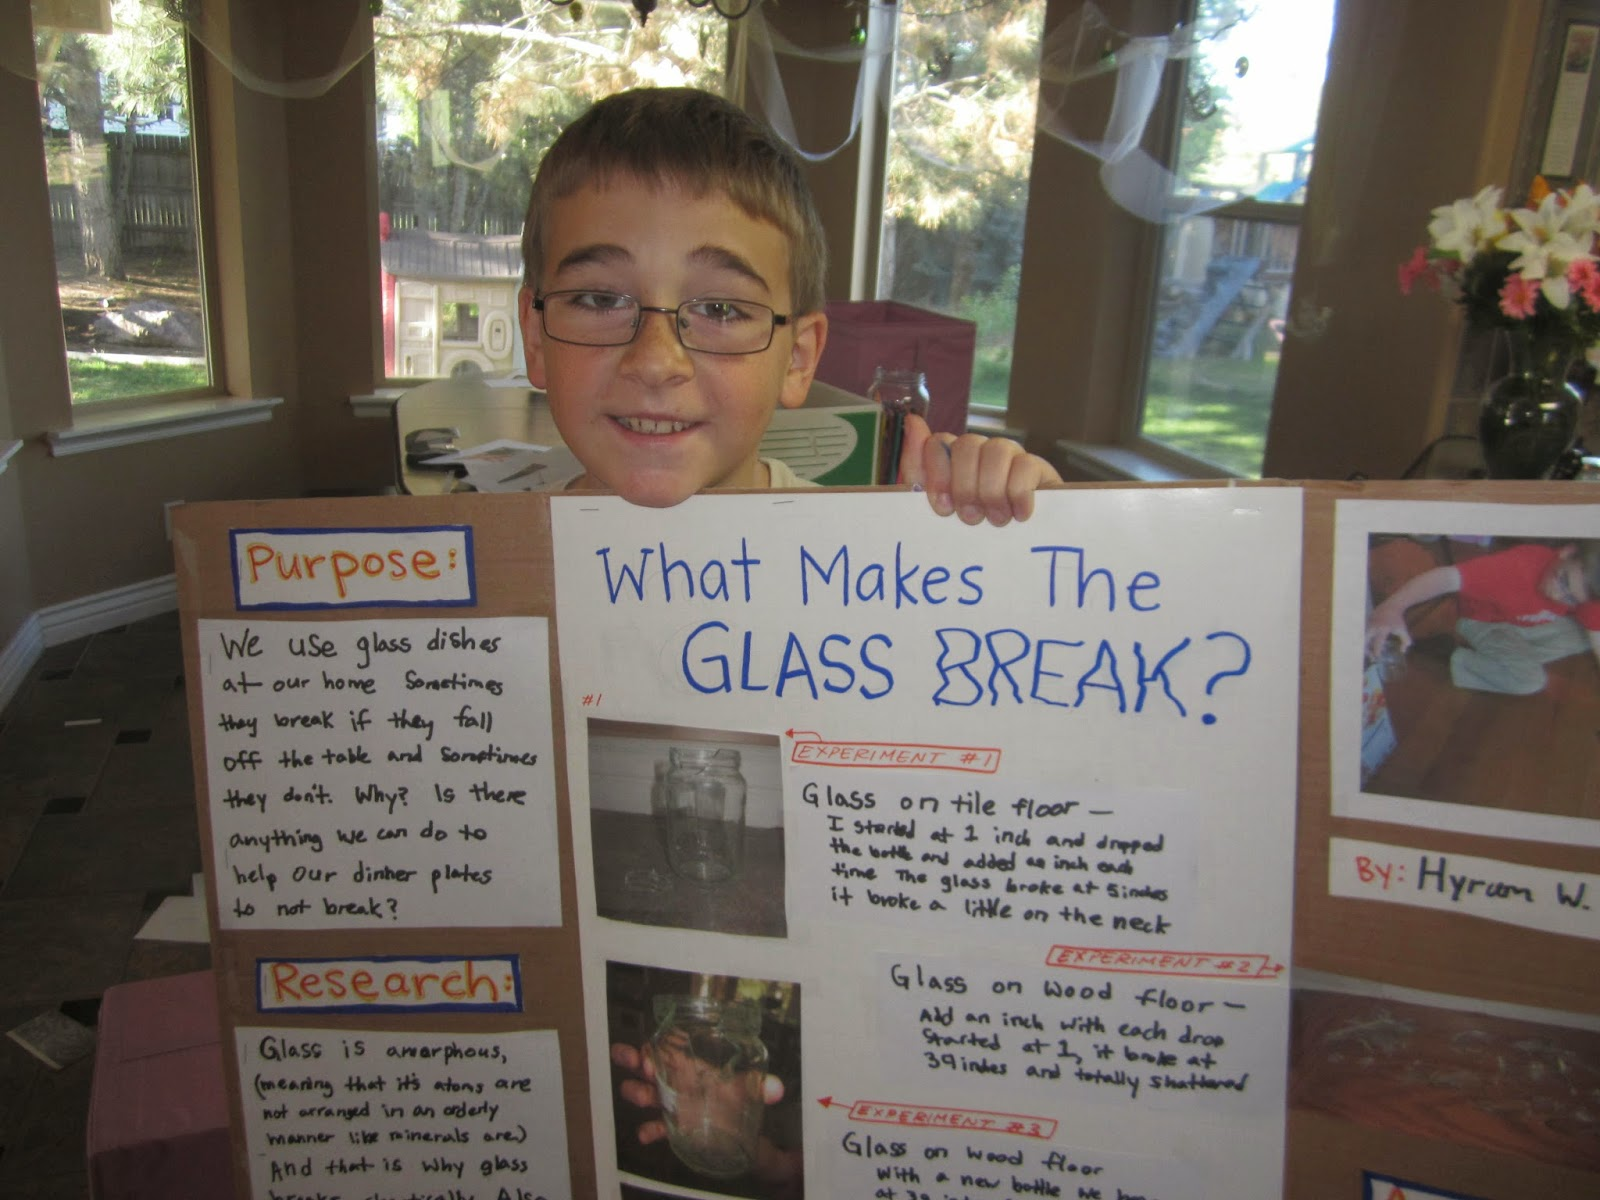 Science projects for 5th graders to do at home